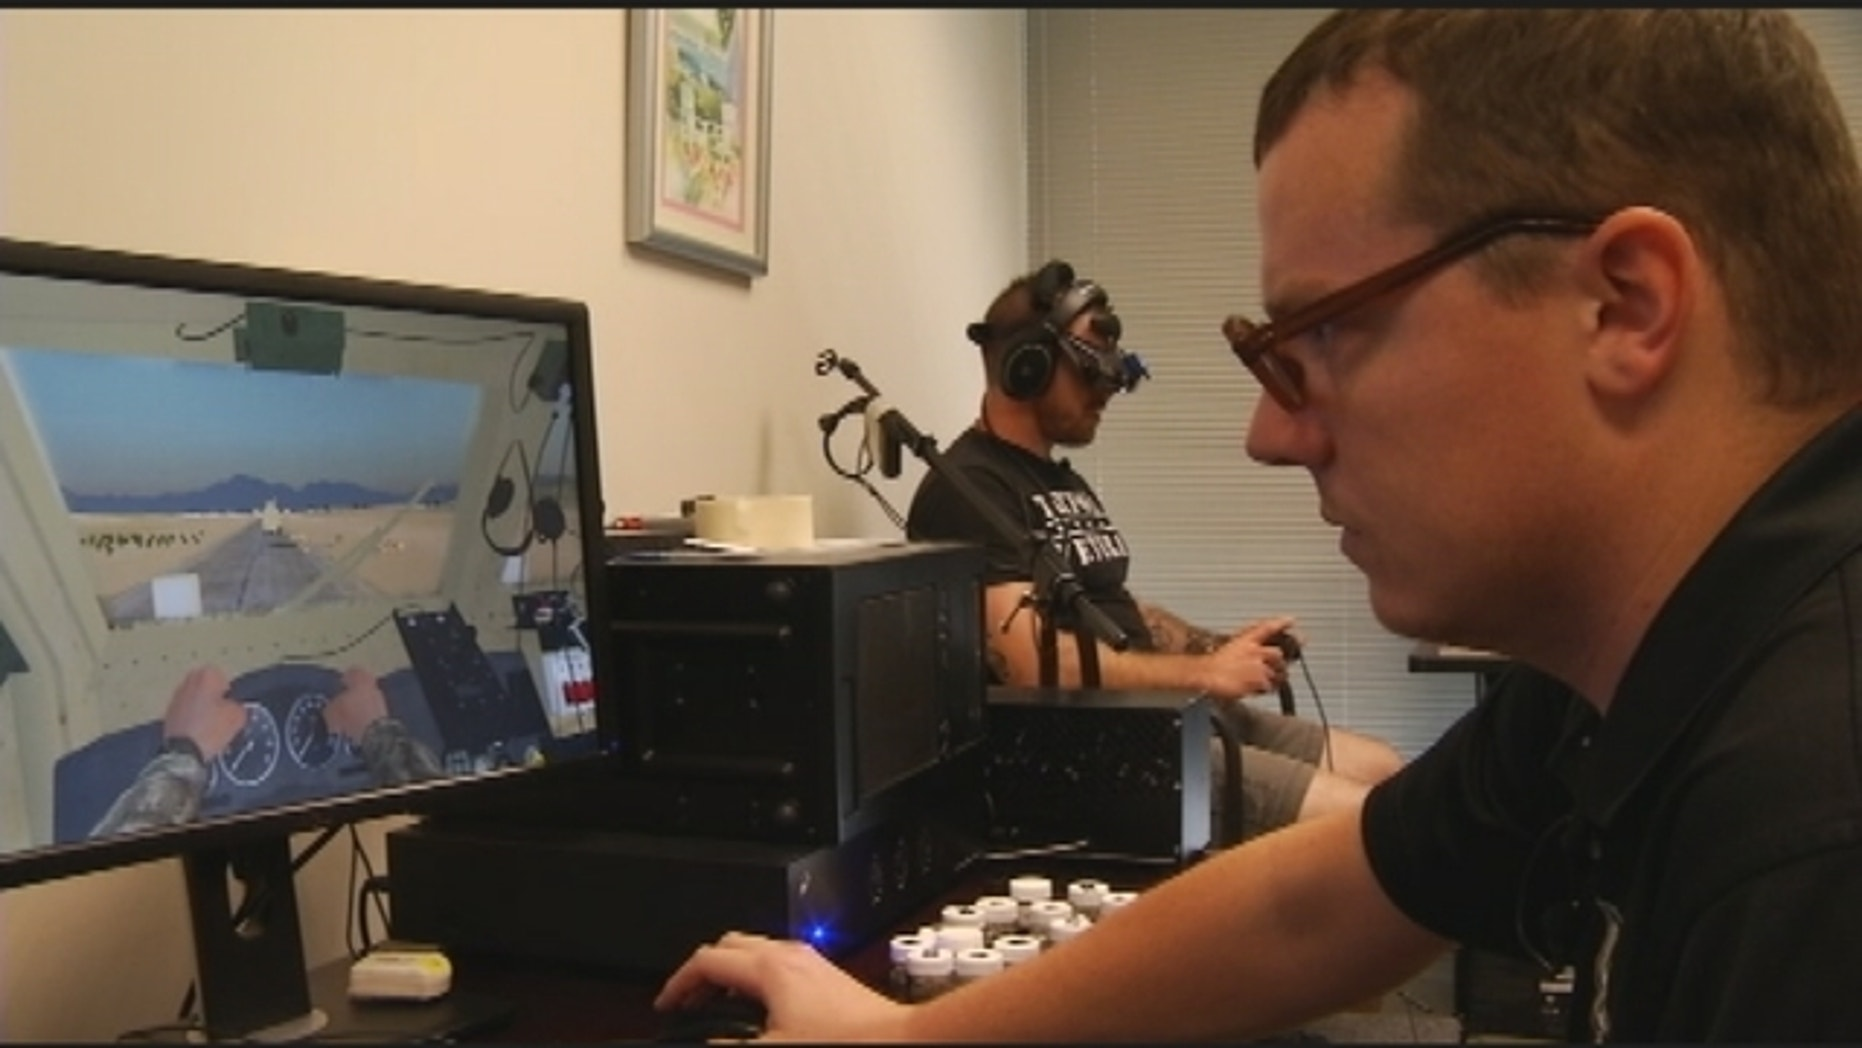 Iraq War veteran Bruce Chambers was the first patient to go through the UCF Restores program, which combines prolonged exposure therapy with virtual reality to help treat veterans' and active-duty soldiers' post-traumatic stress disorder (PTSD).